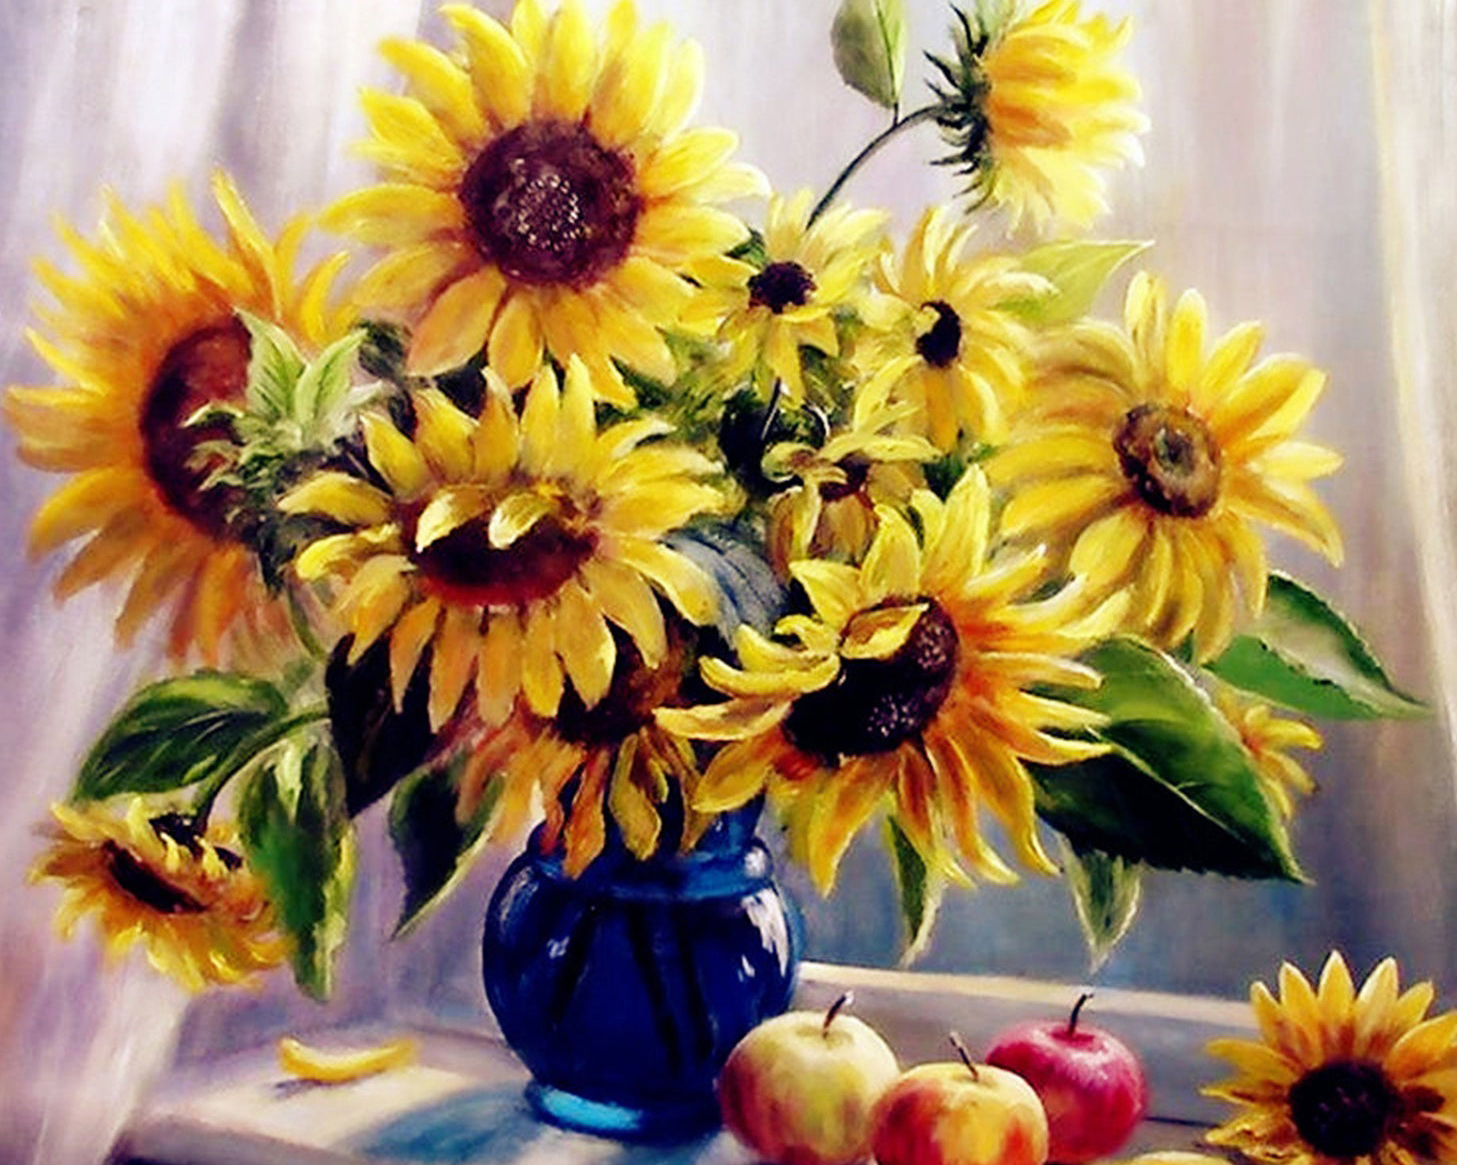 Paint by number sunflowers in blue vase